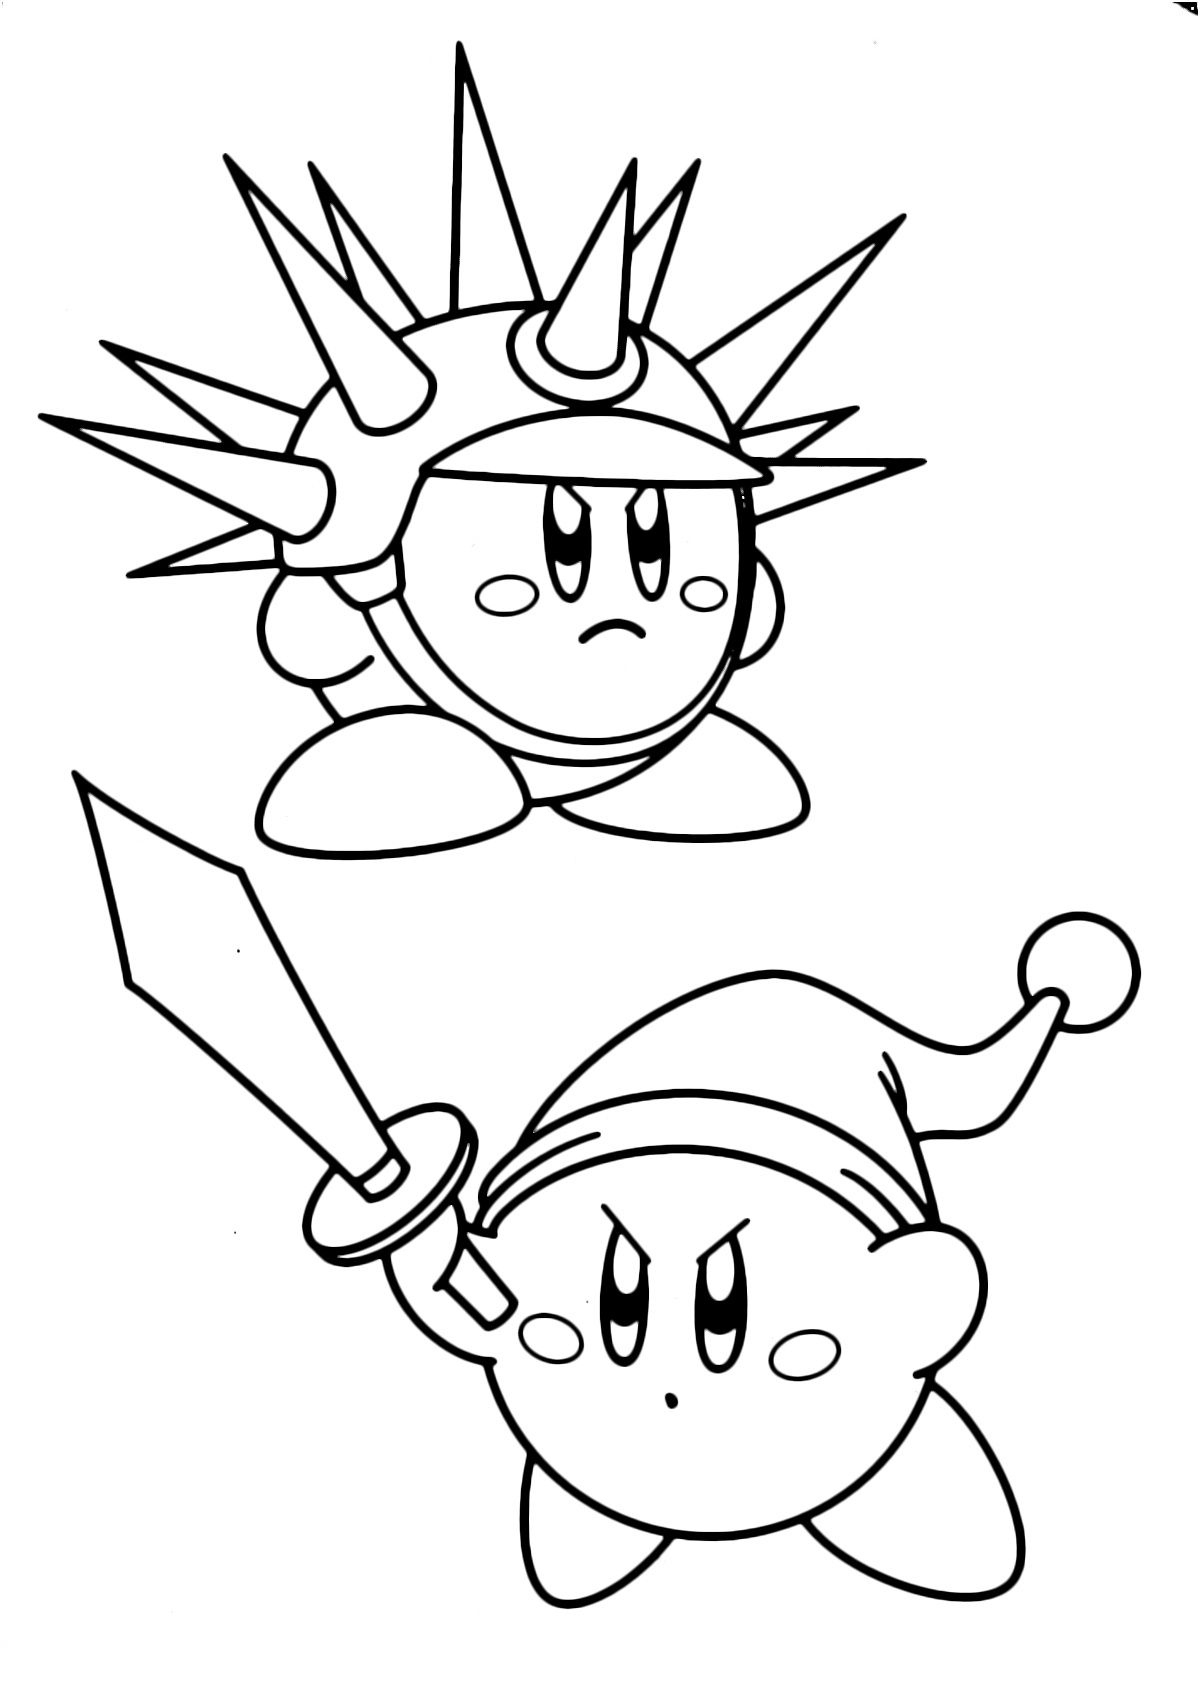 15 classique coloriage kirby pictures in 2020  kostenlose